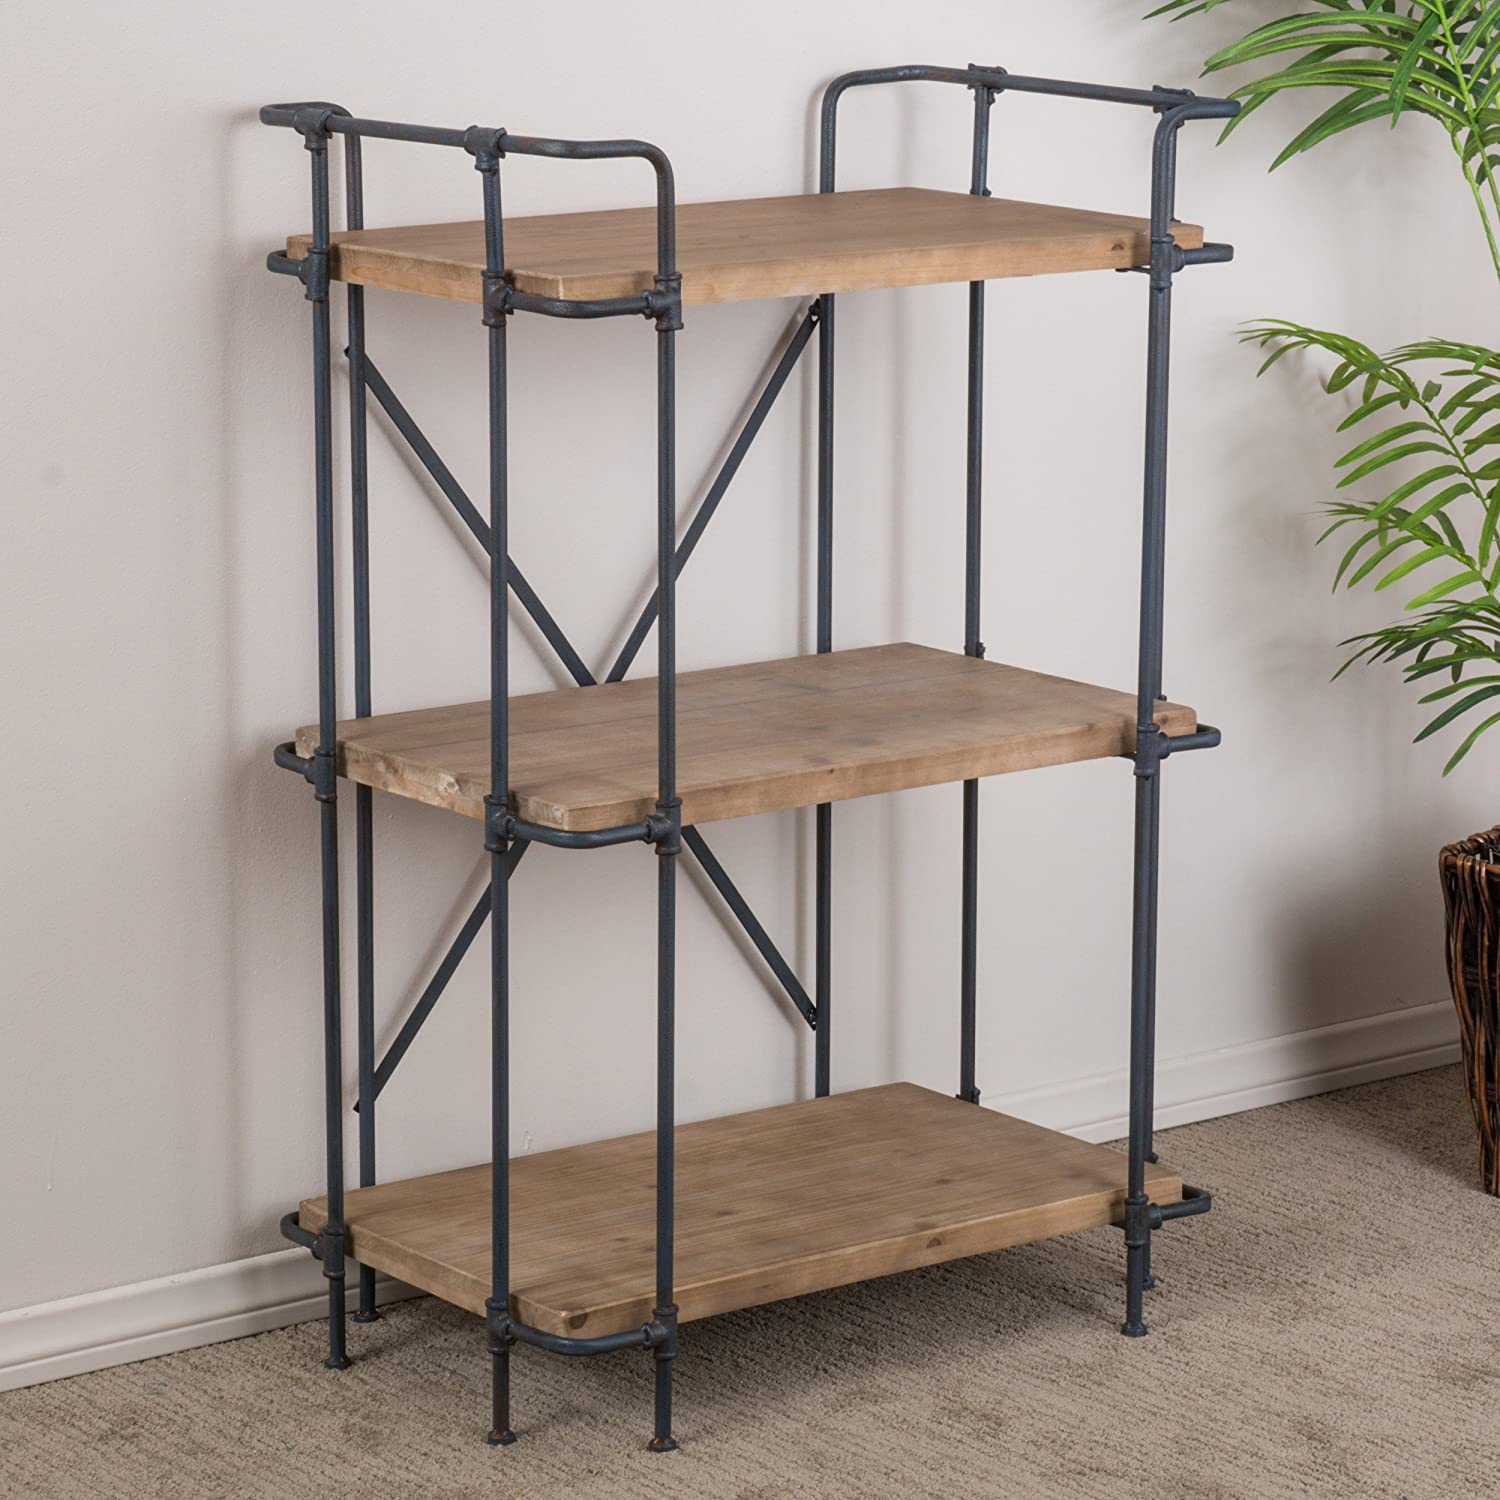 amazoncom great deal furniture denise austin home brooklyn 3 shelf bookcase kitchen dining - Overstock Bookshelves